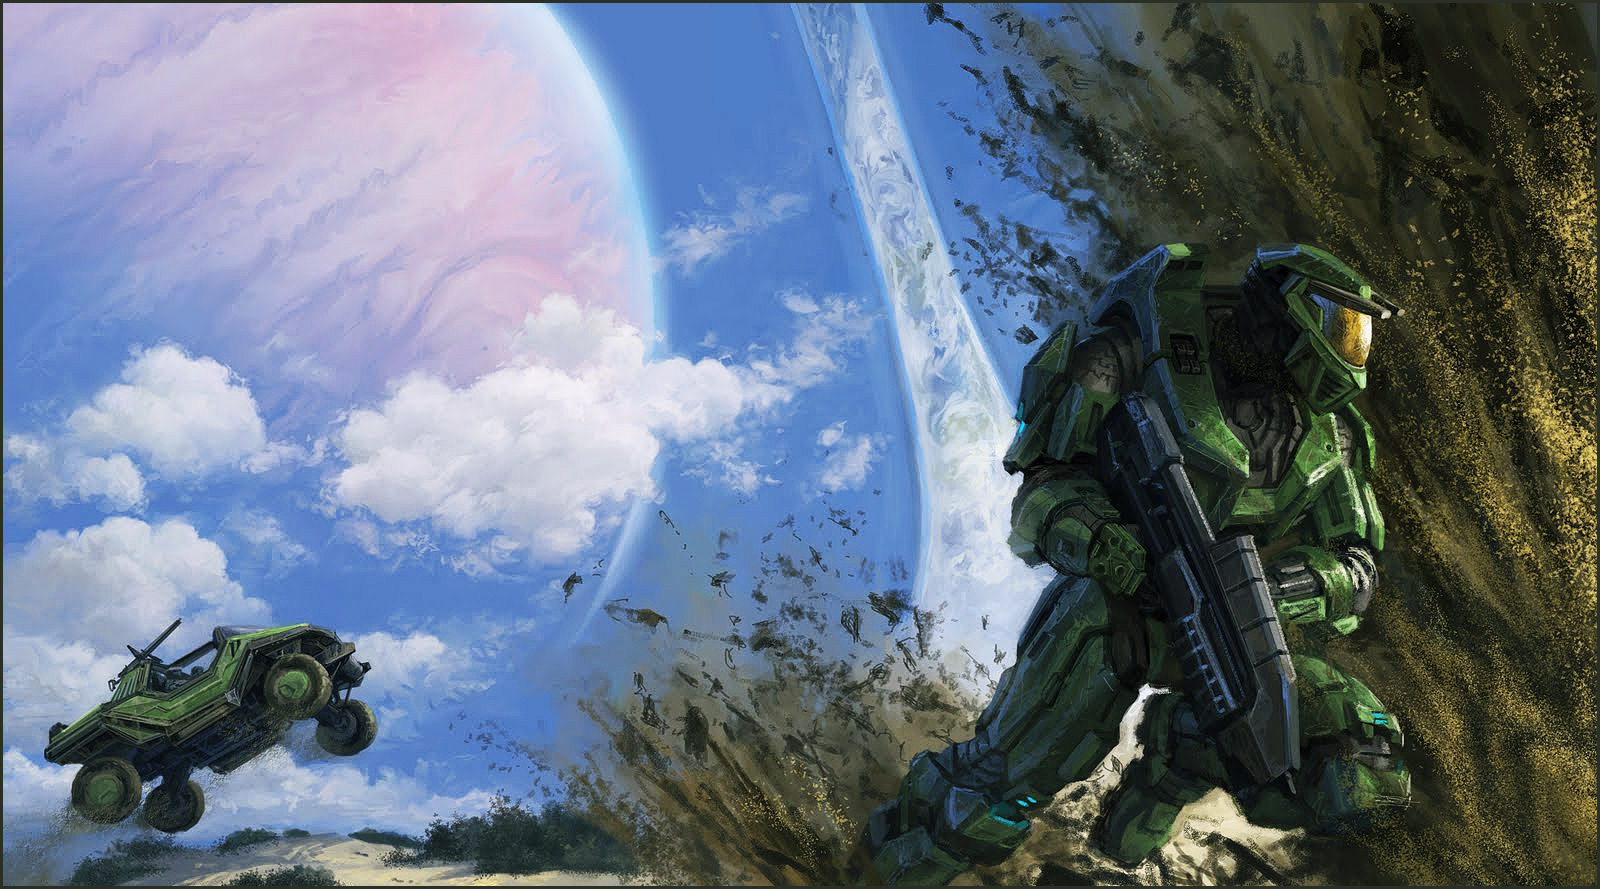 halo_anniversary_ost_concept_cover_by_karagounis13-d5sw8x6.jpg